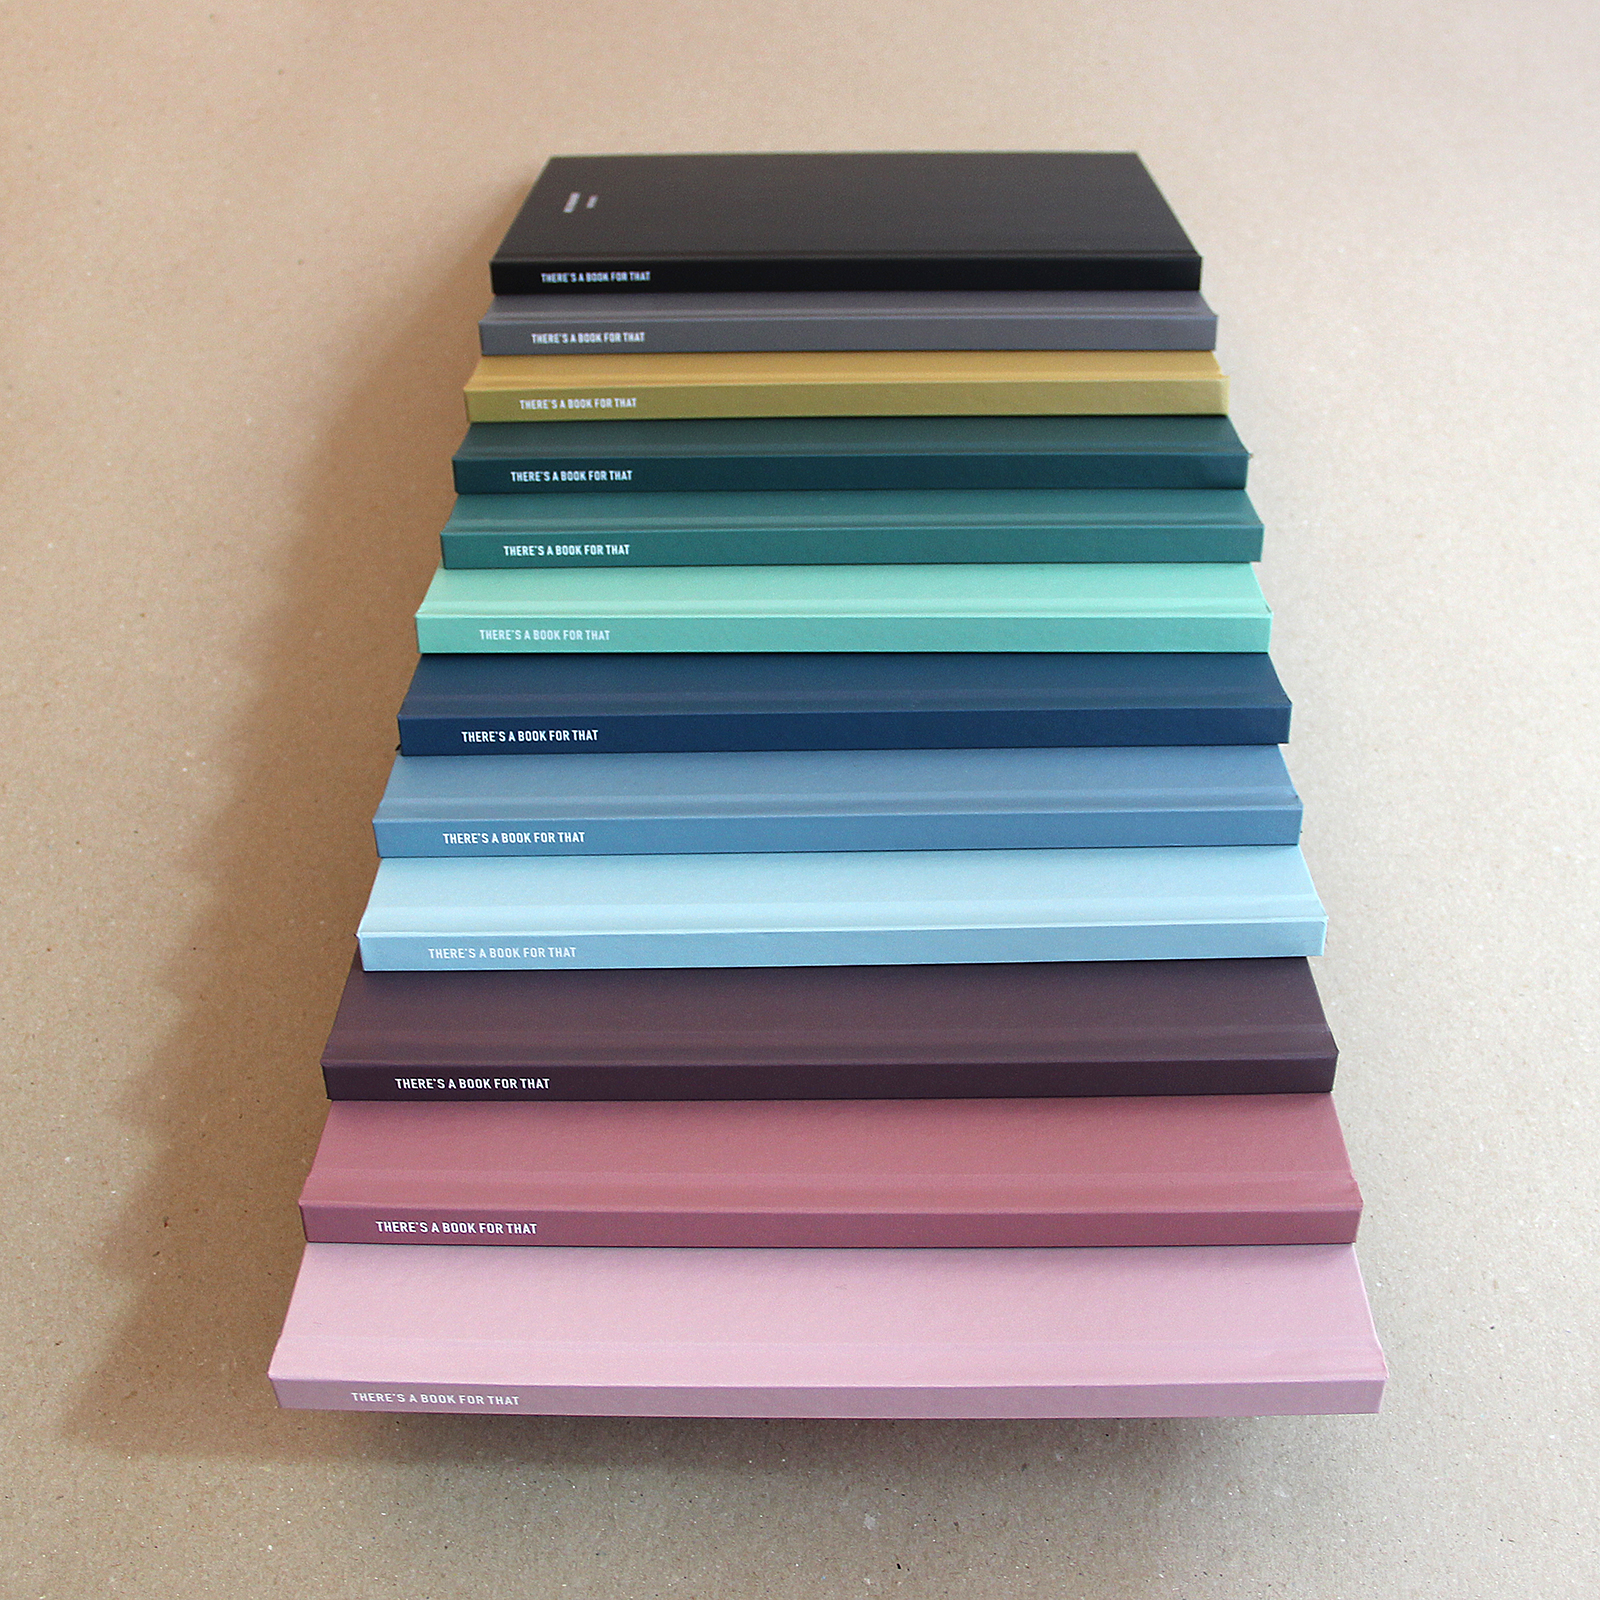 It's all about the Color! Our Cover options explained.